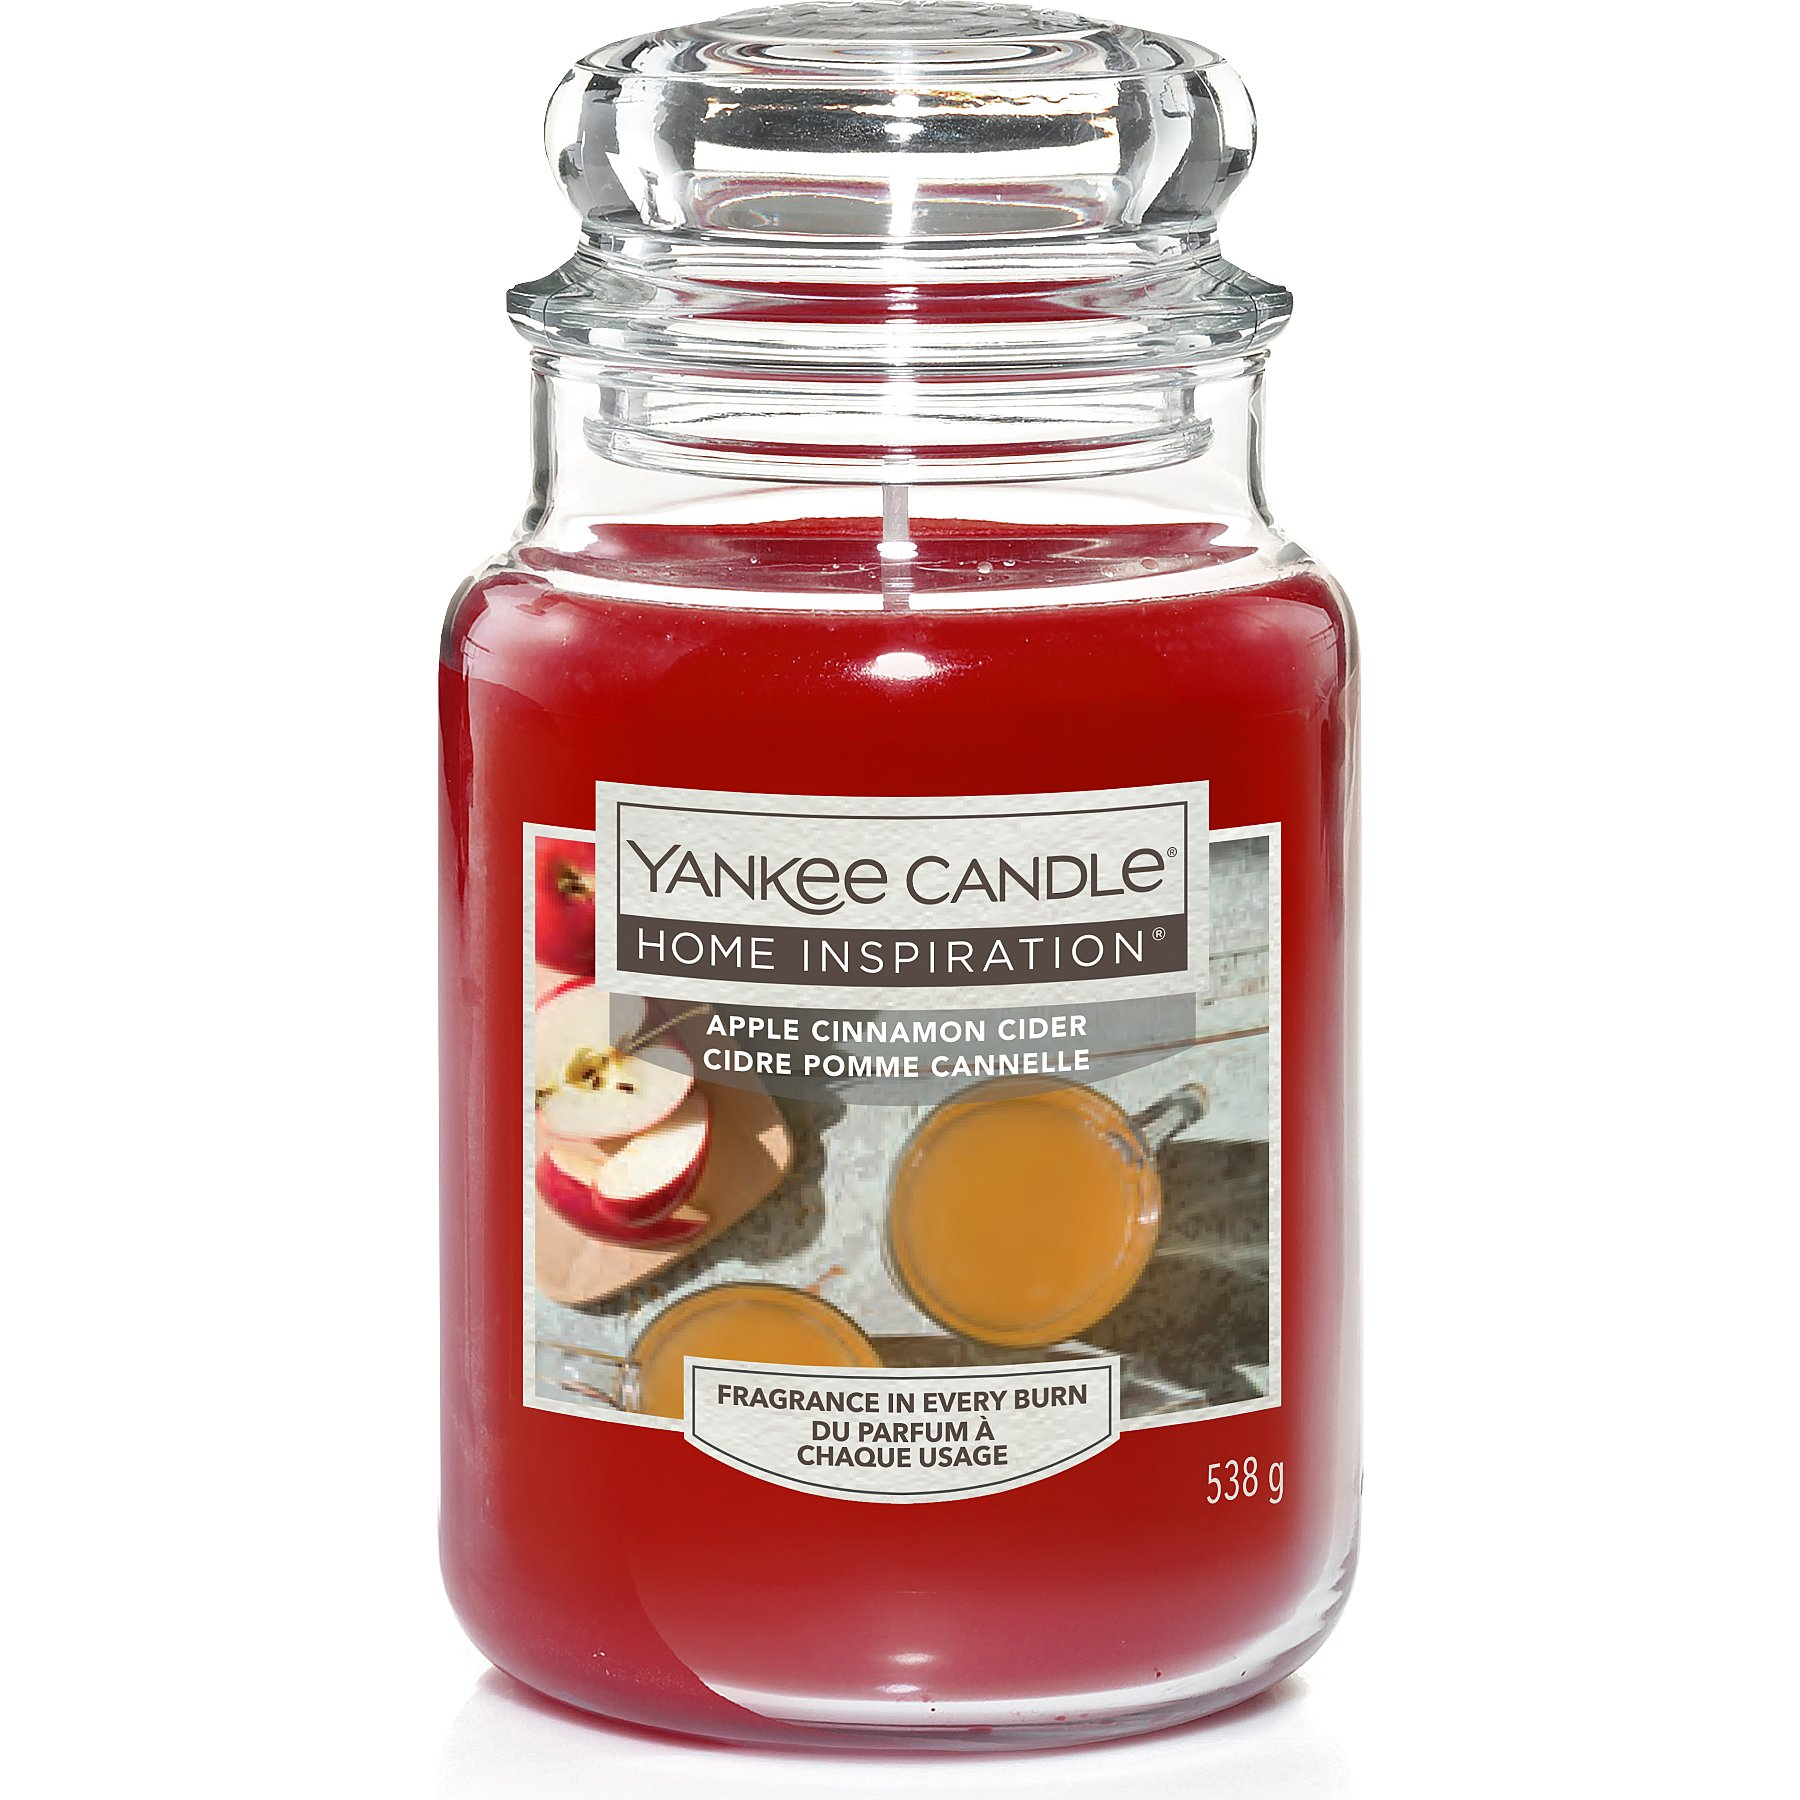 Yankee Candle Apple Cinnamon Cider Large Jar Home George At Asda